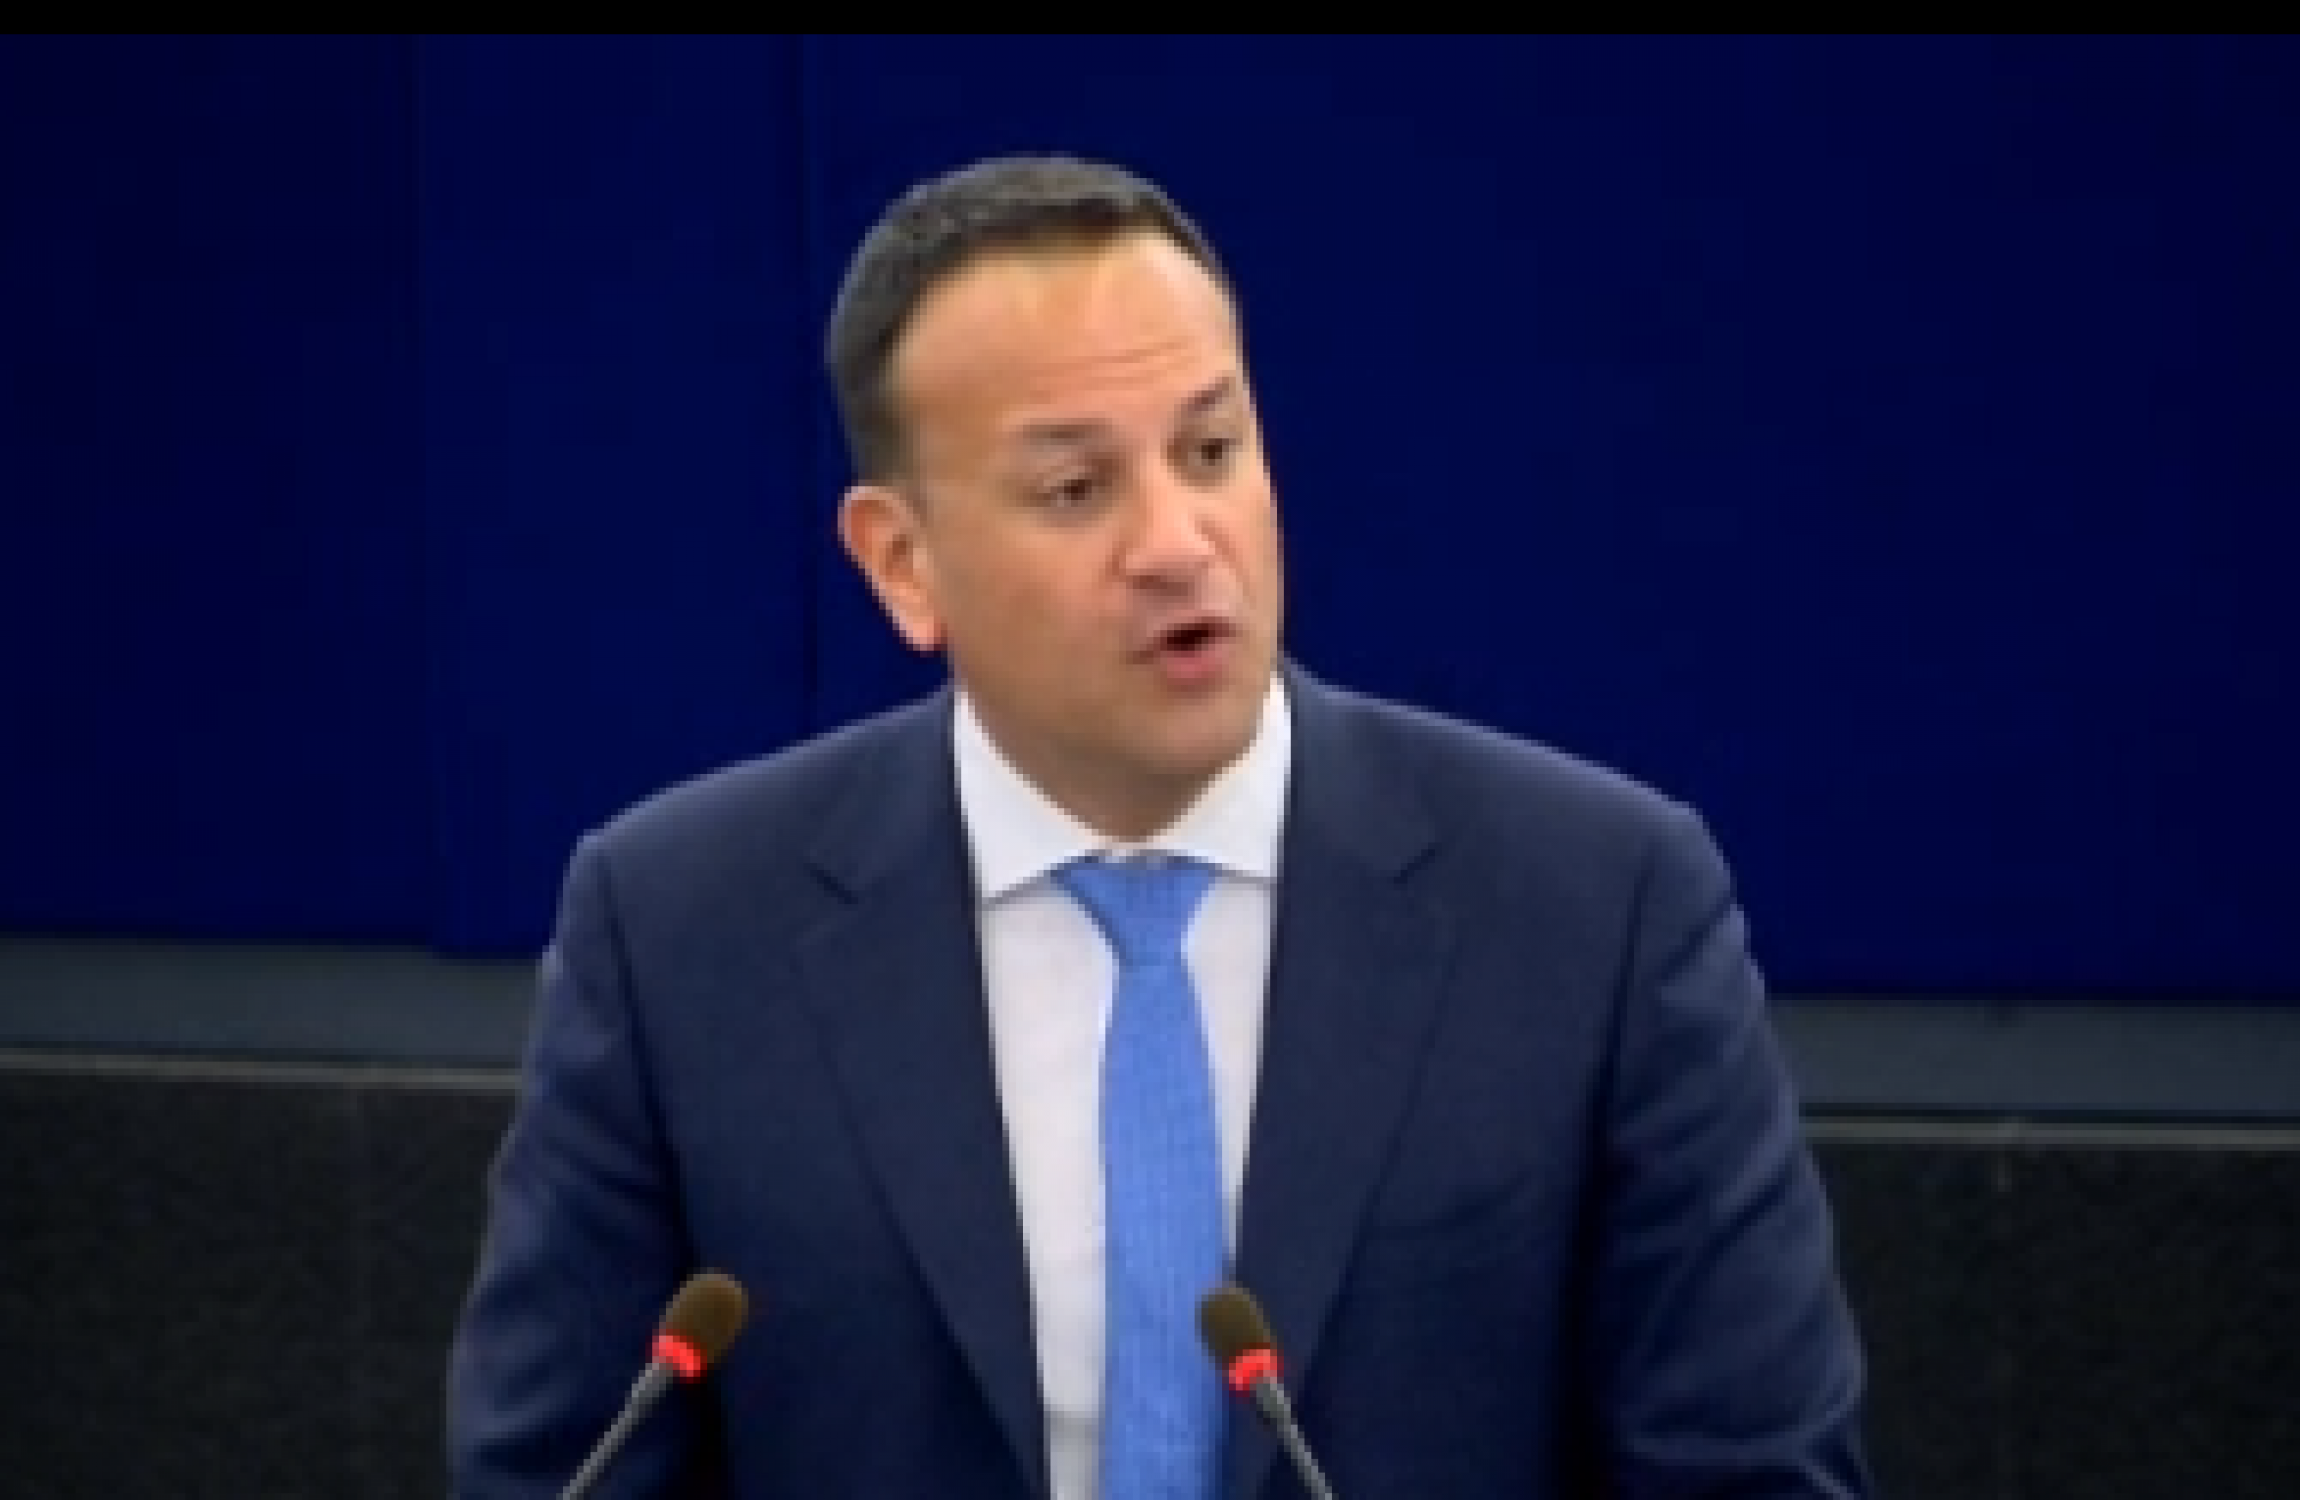 European Union members should be allowed set own tax rates, Varadkar says